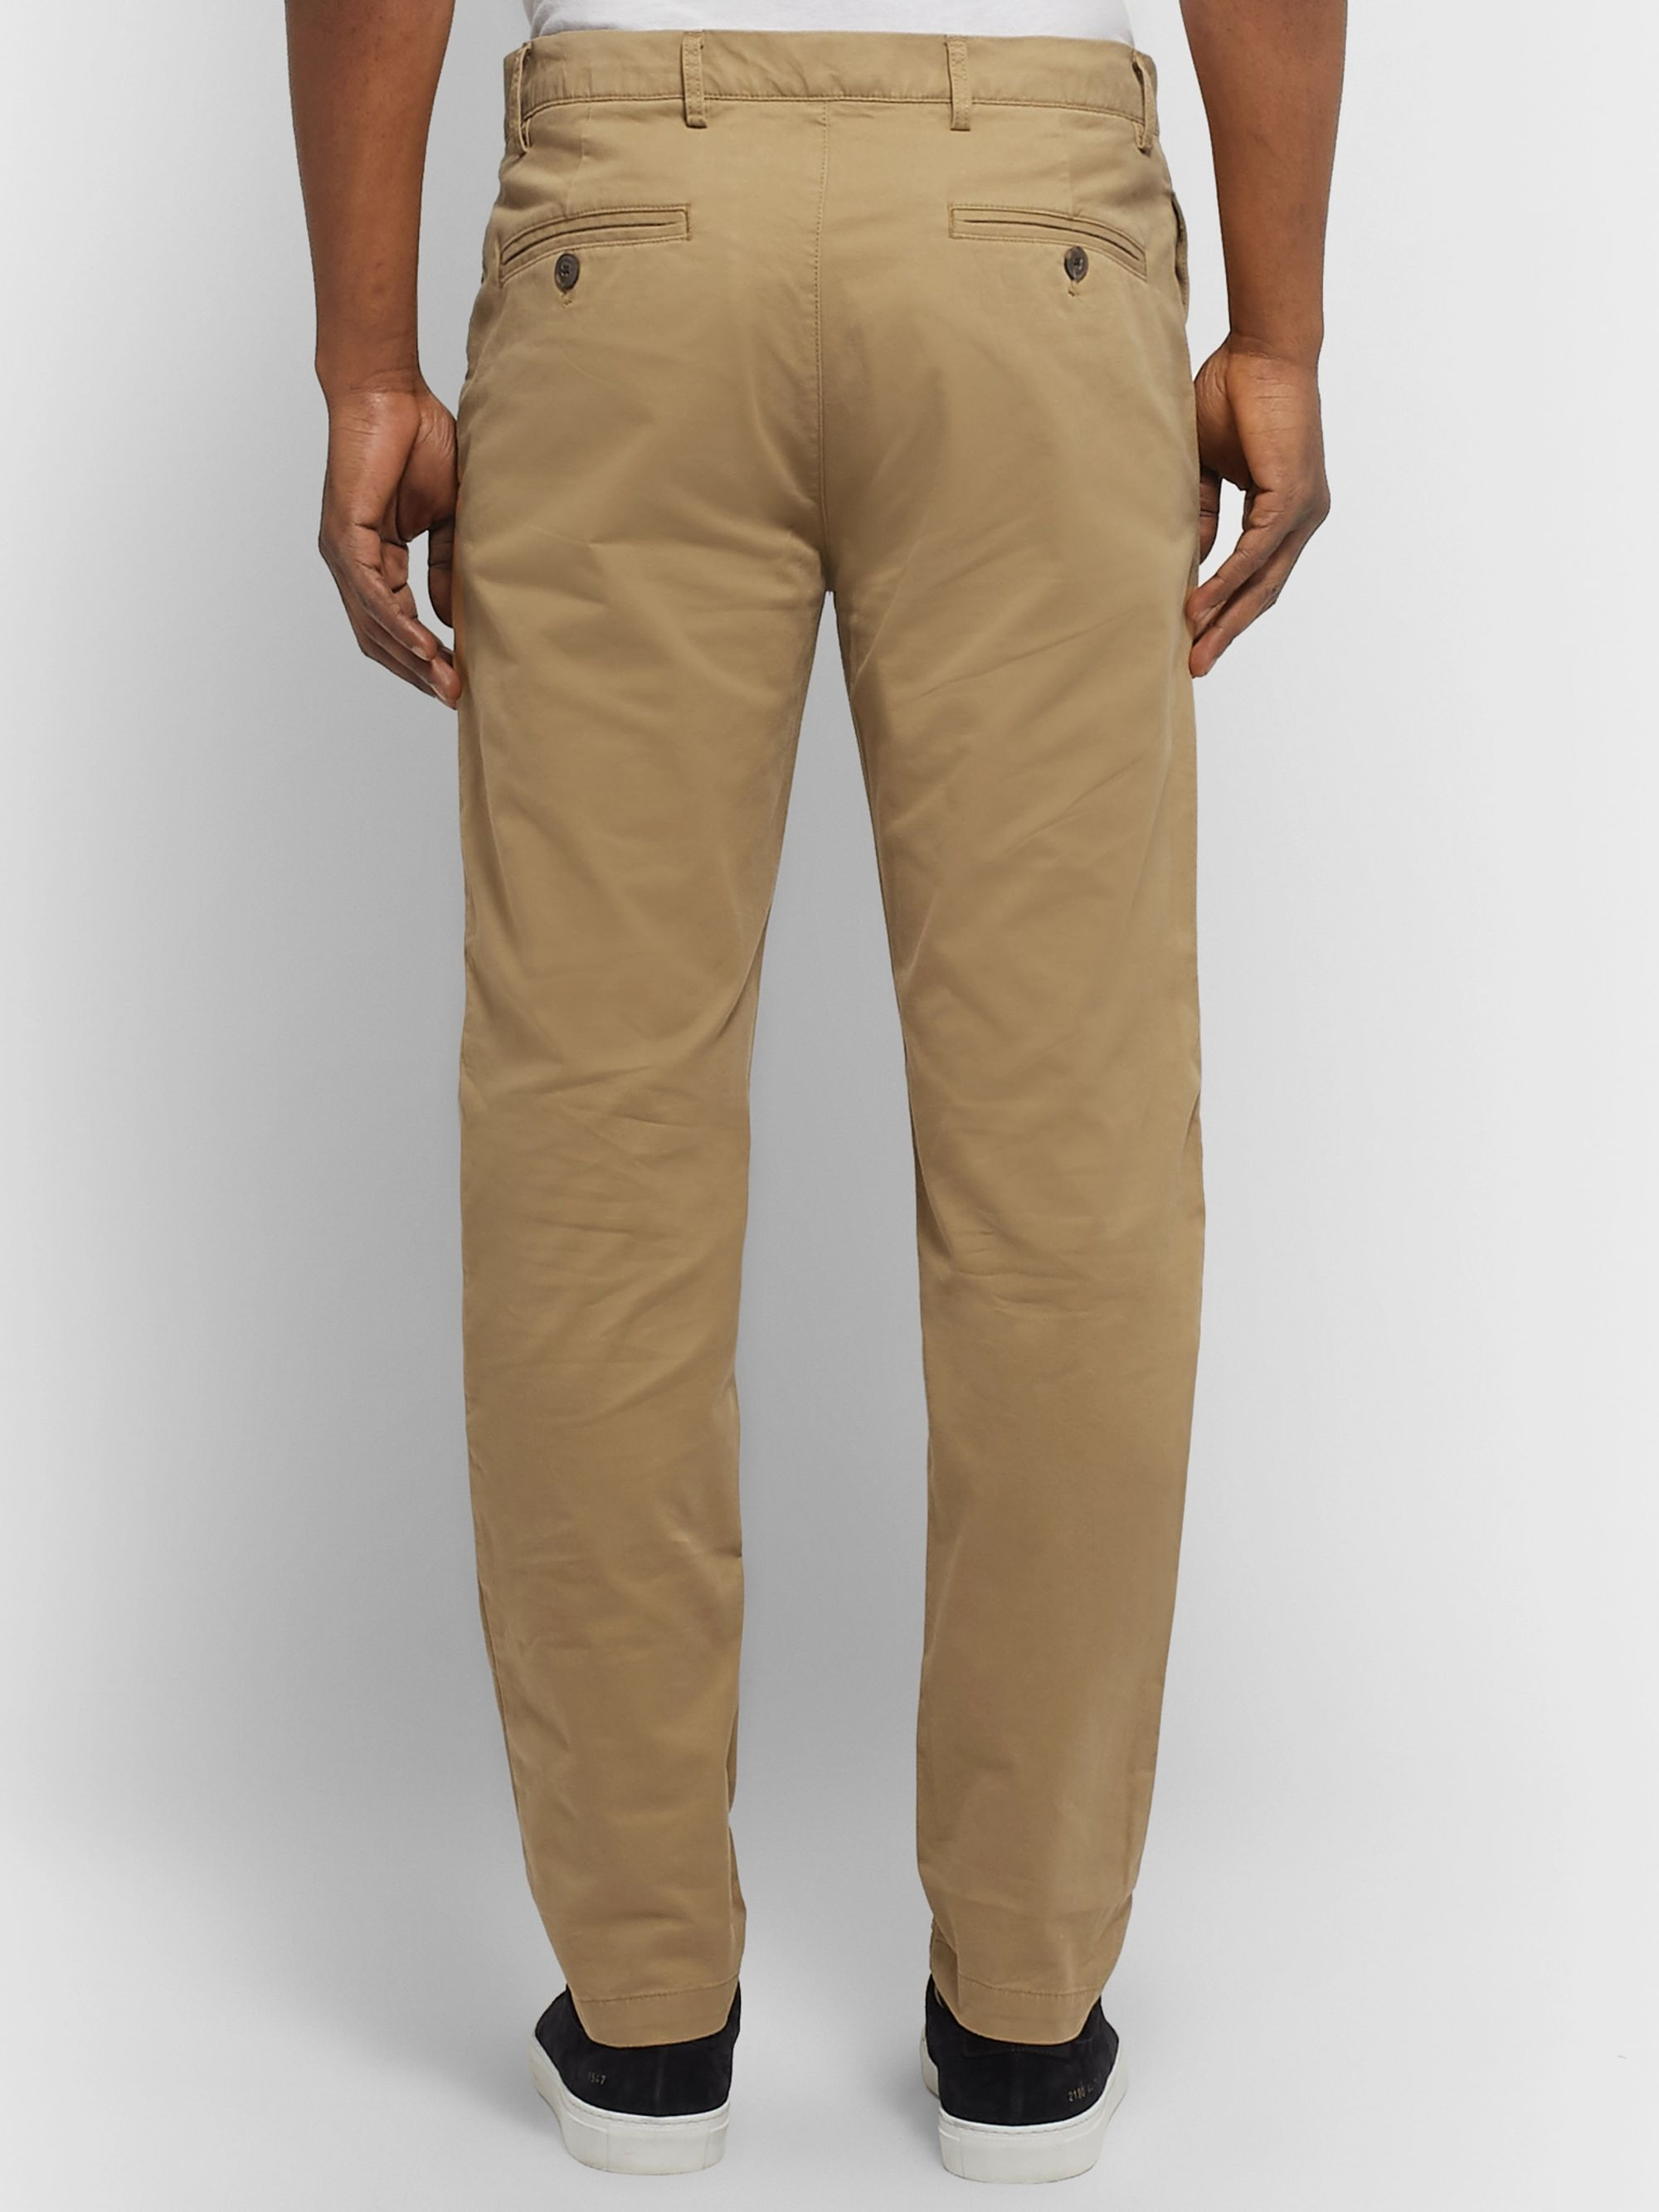 Club Monaco Slim-Fit Cotton-Blend Twill Chinos